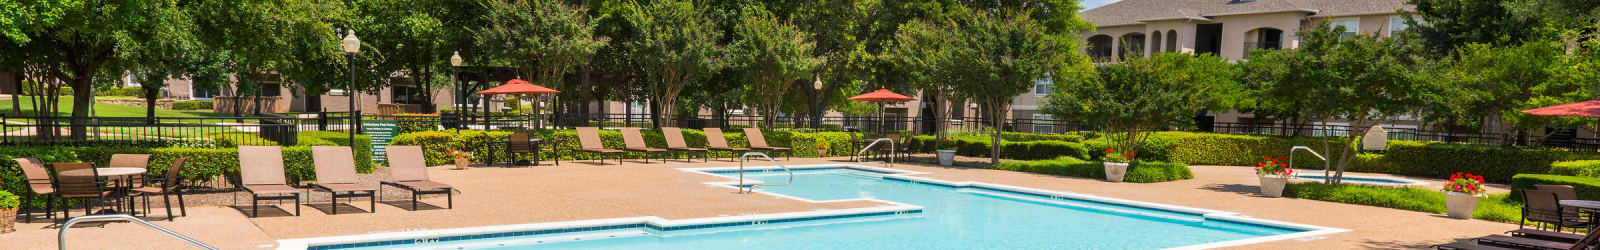 Apply now at Ballantyne Apartments in Lewisville, Texas